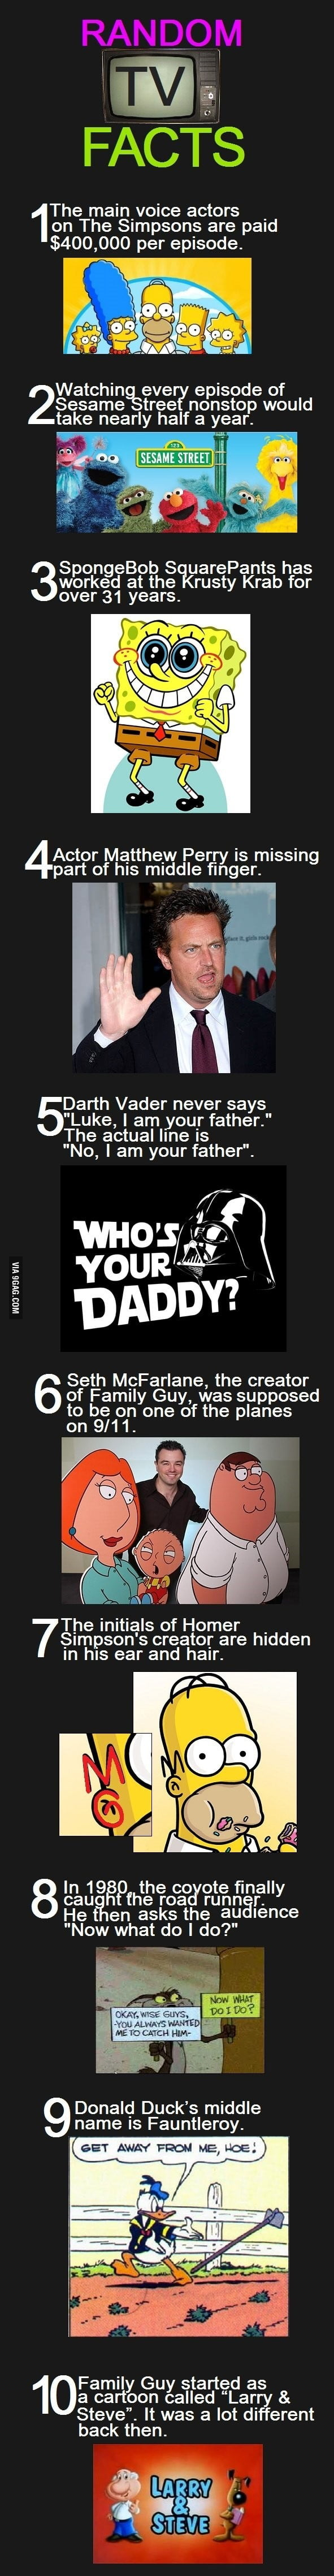 Random TV Facts